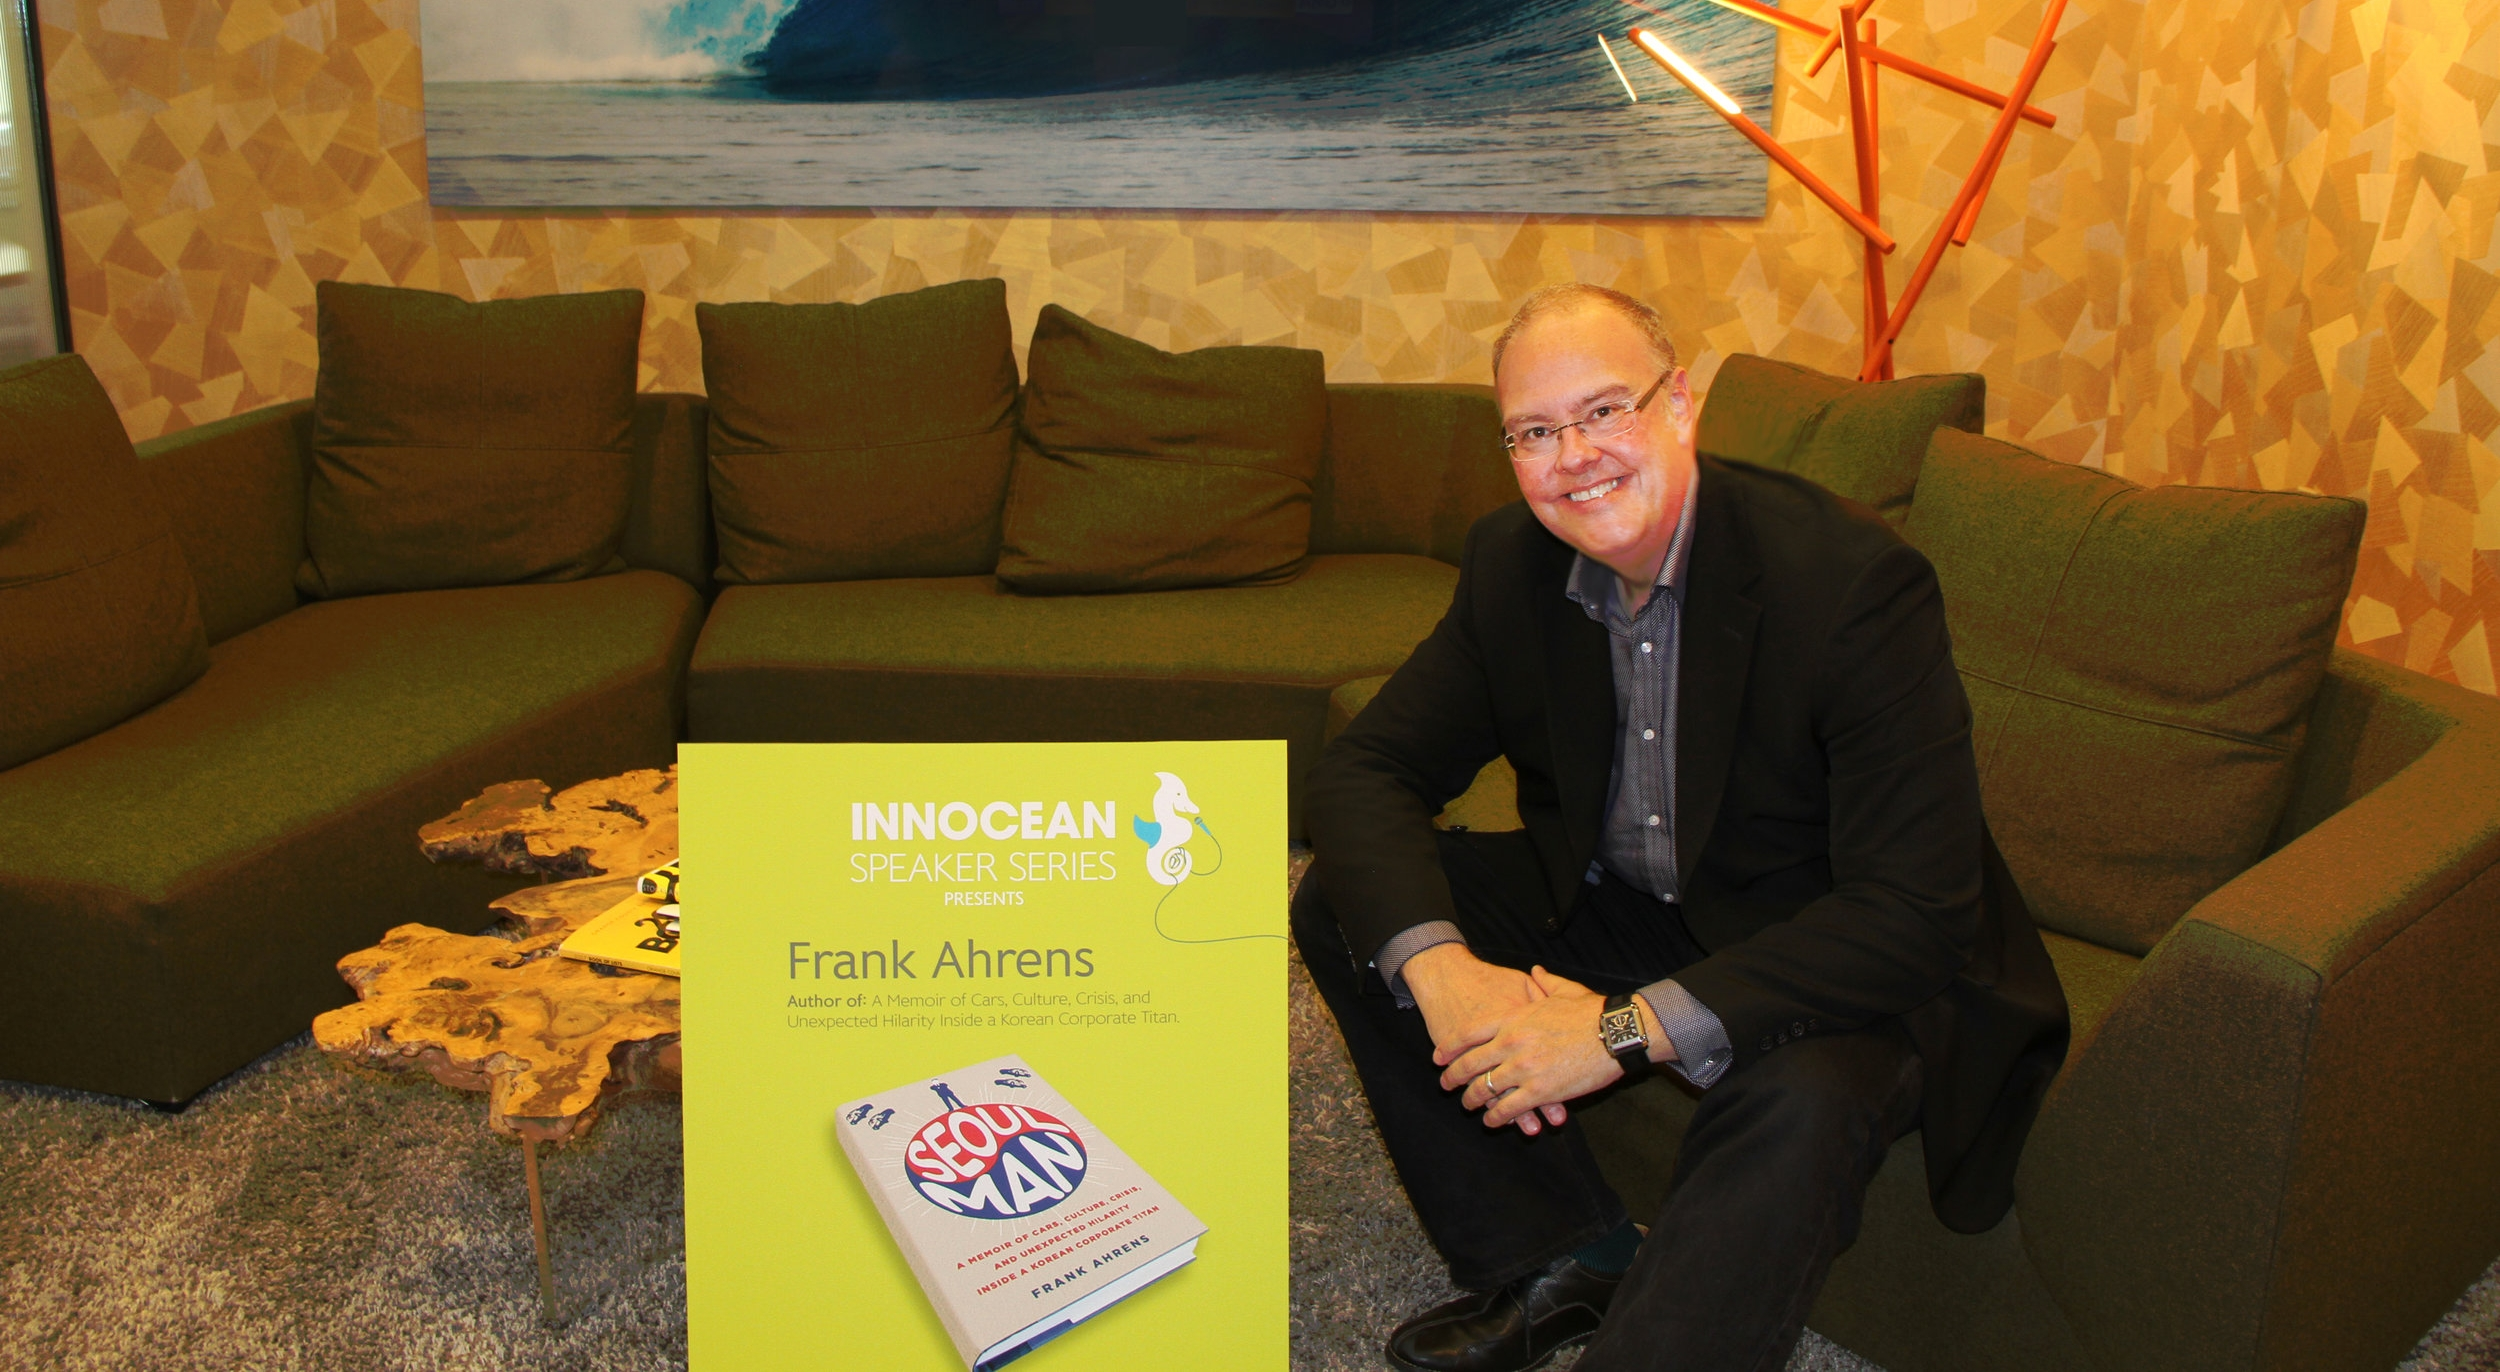 Frank speaking at advertising agency InnoceanUSA in Huntington Beach, Calif.